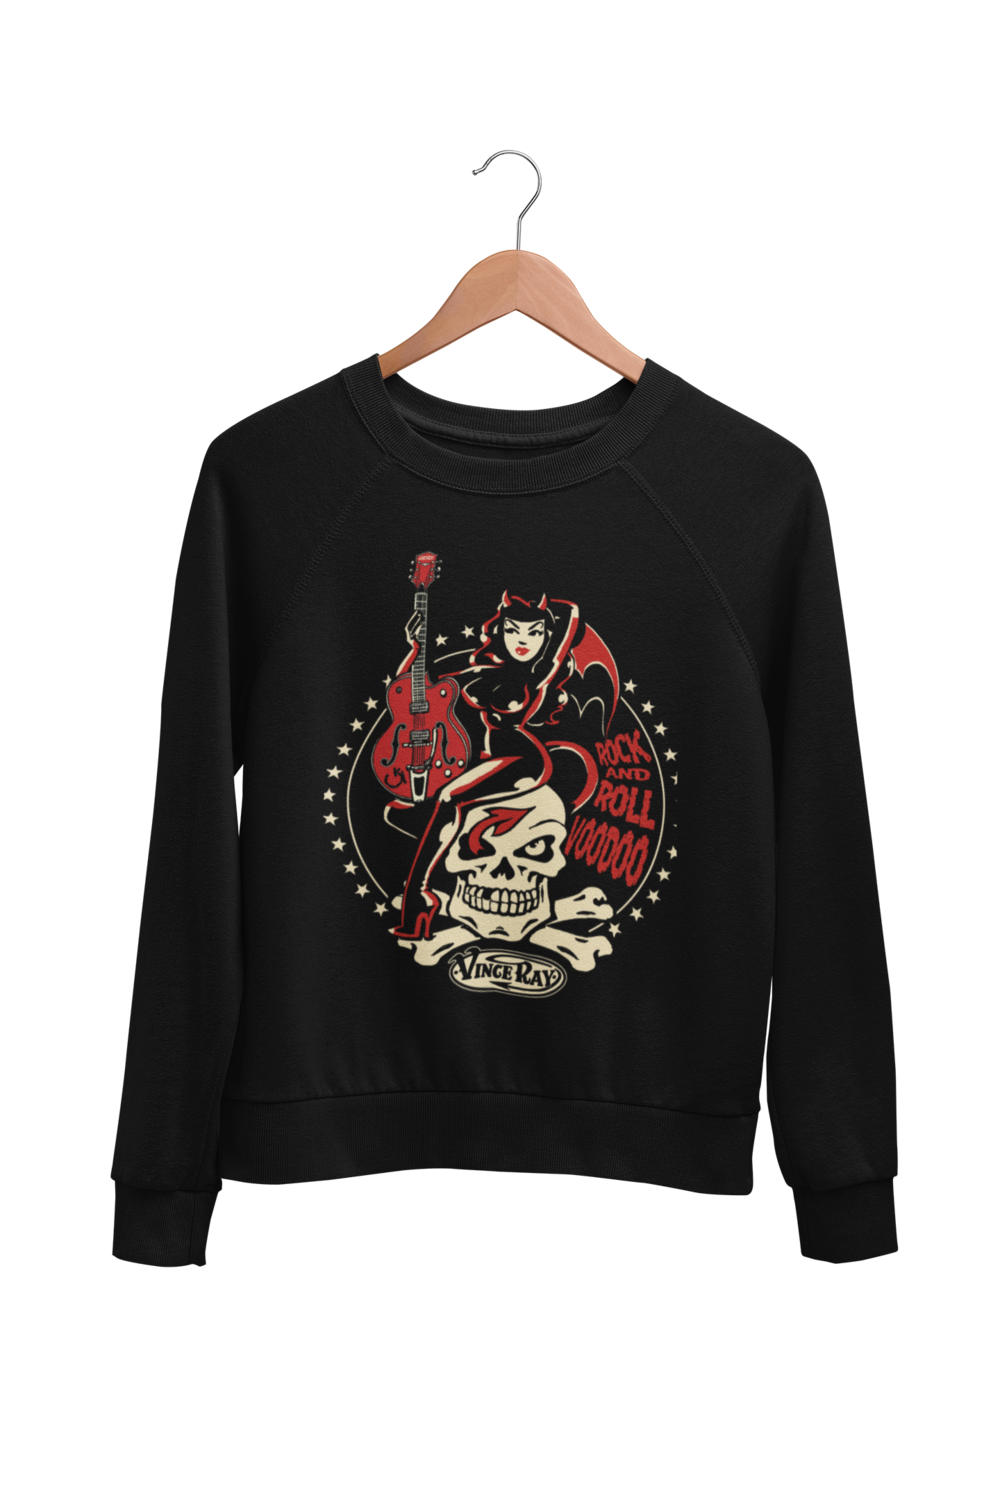 ROCK AND ROLL VOODOO SWEATSHIRT UNISEX by VINCE RAY